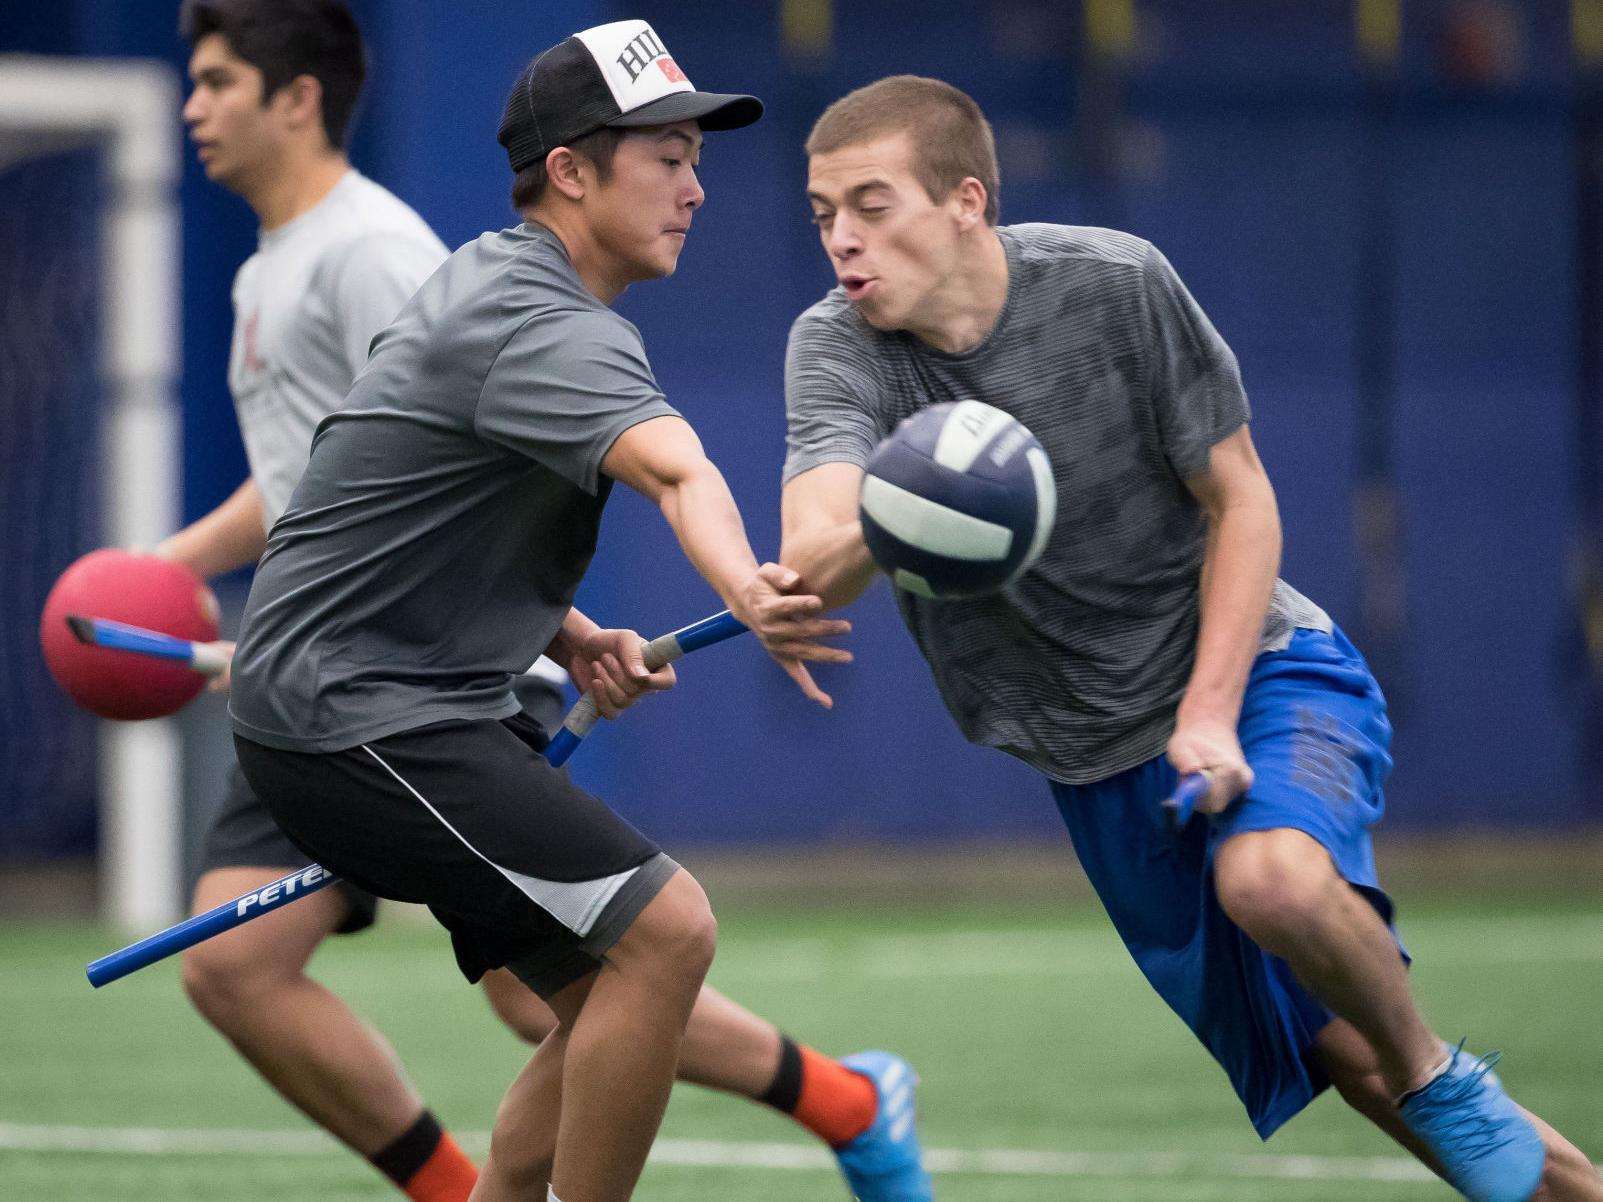 From Hogwarts to Creighton: This is muggles quidditch, a real sport ...